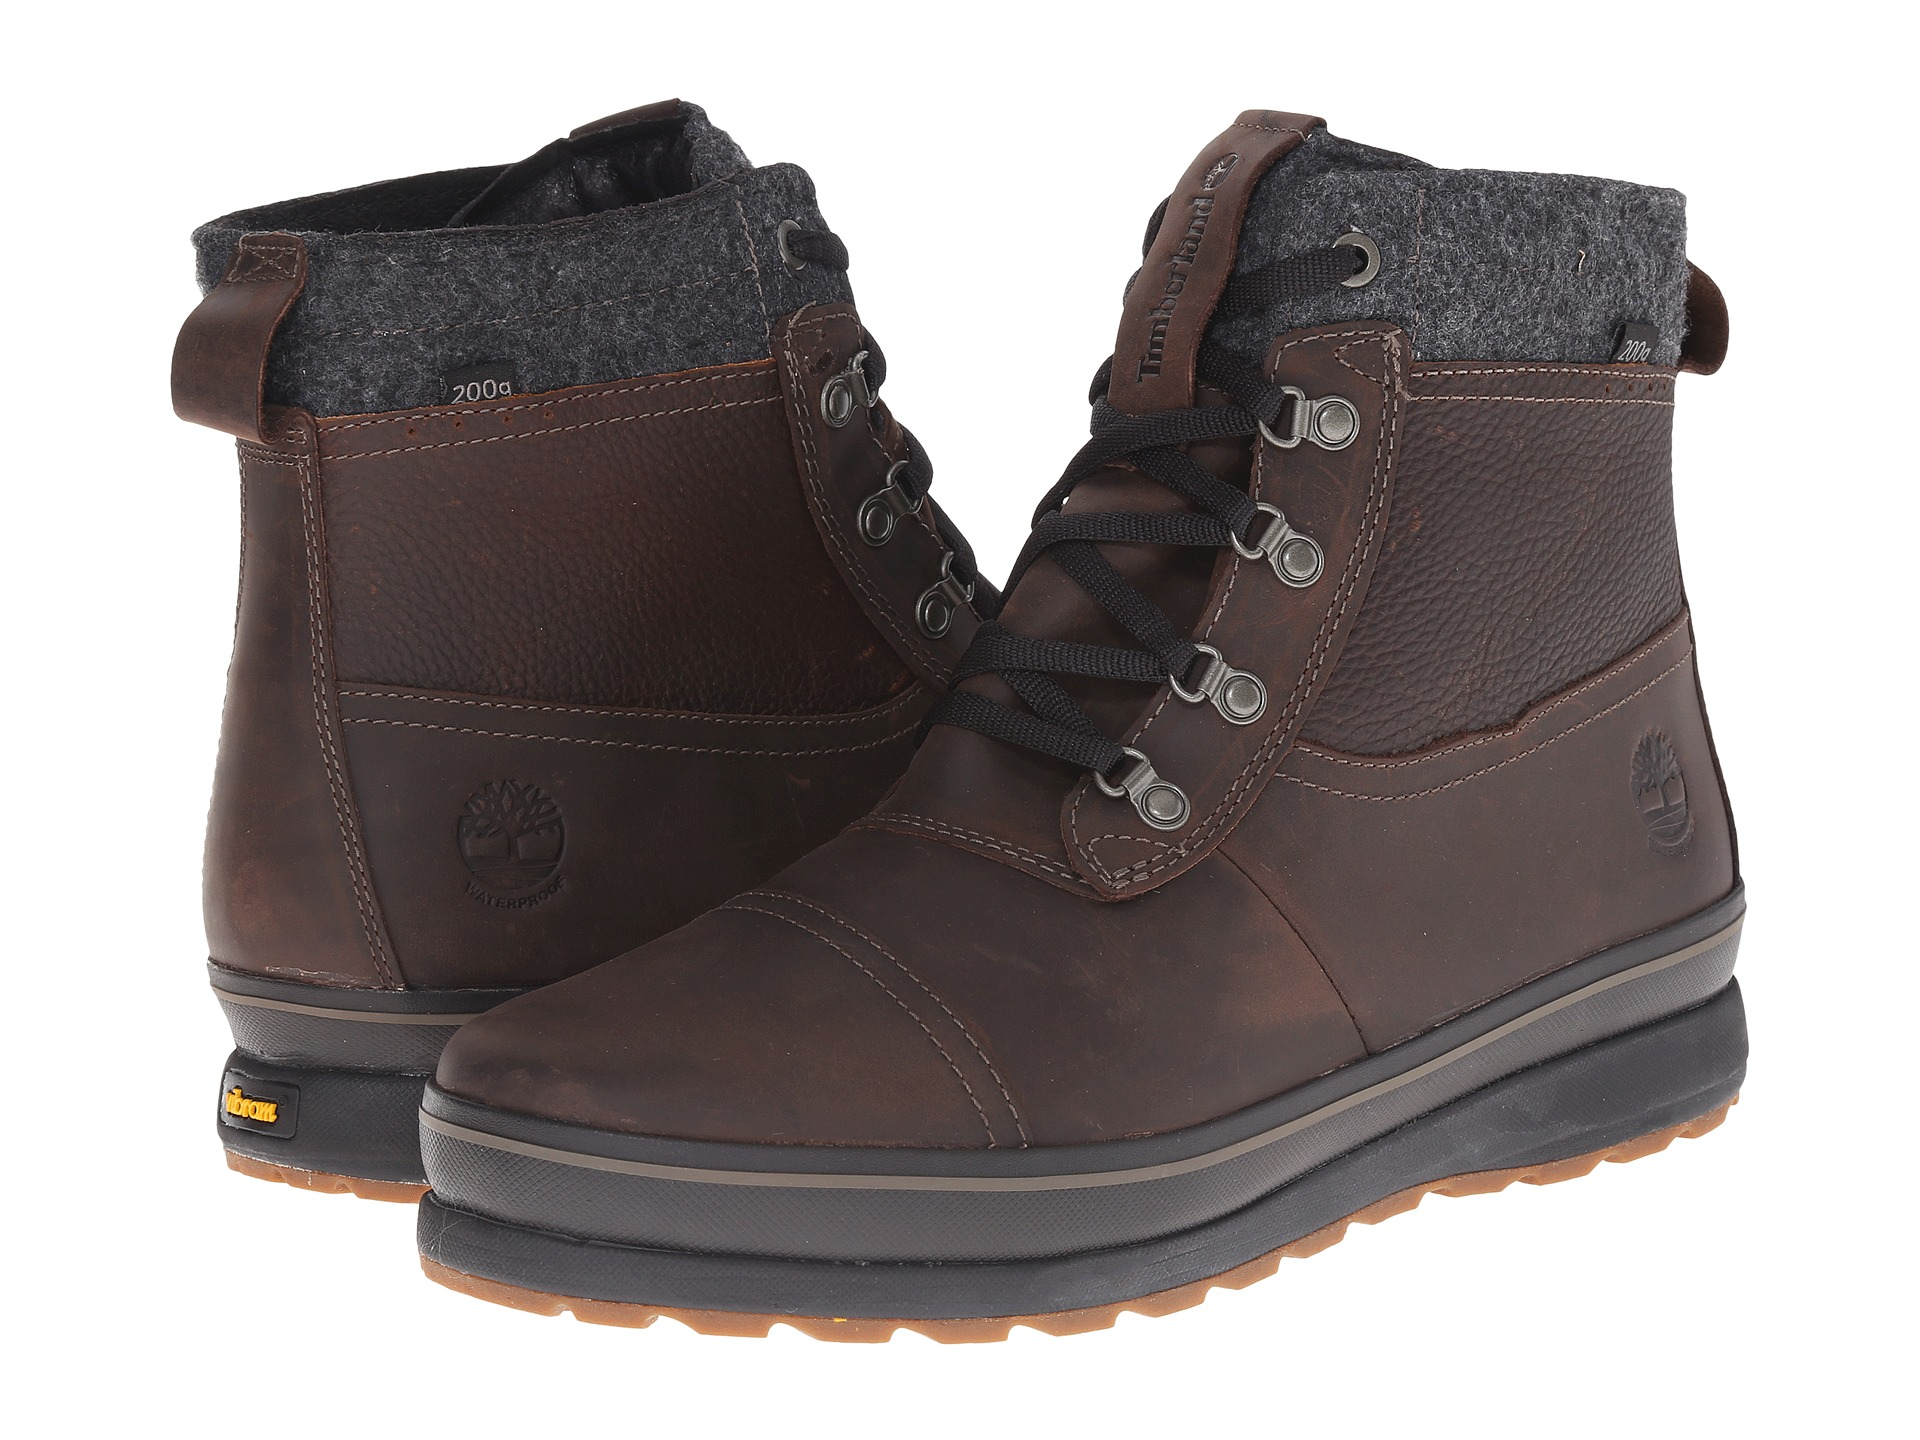 timberland waterproof and insulated boots